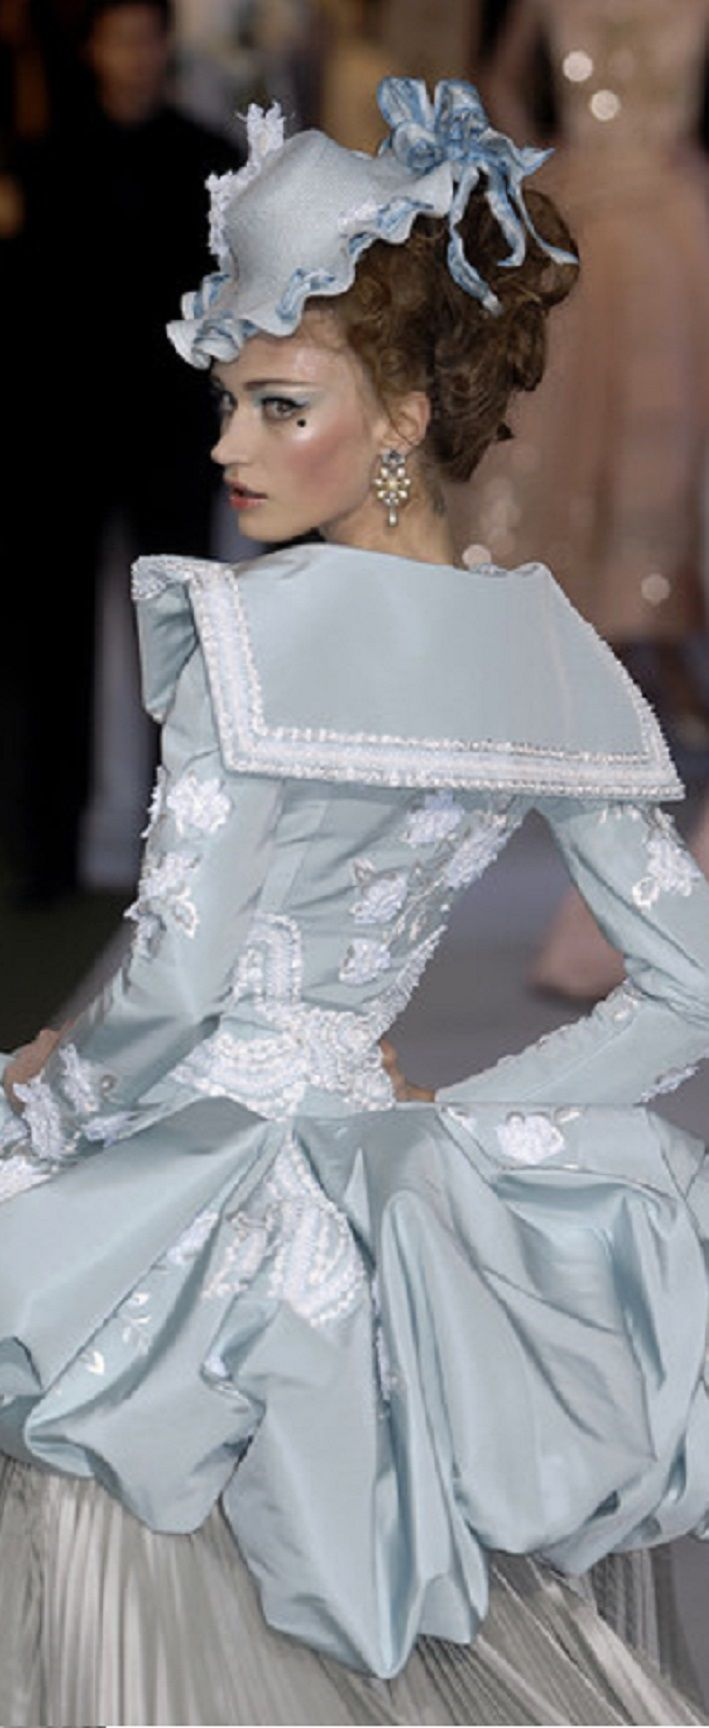 Christian Dior SS2007 | John Galliano. Pastel color with a big skirt and a head with hat.